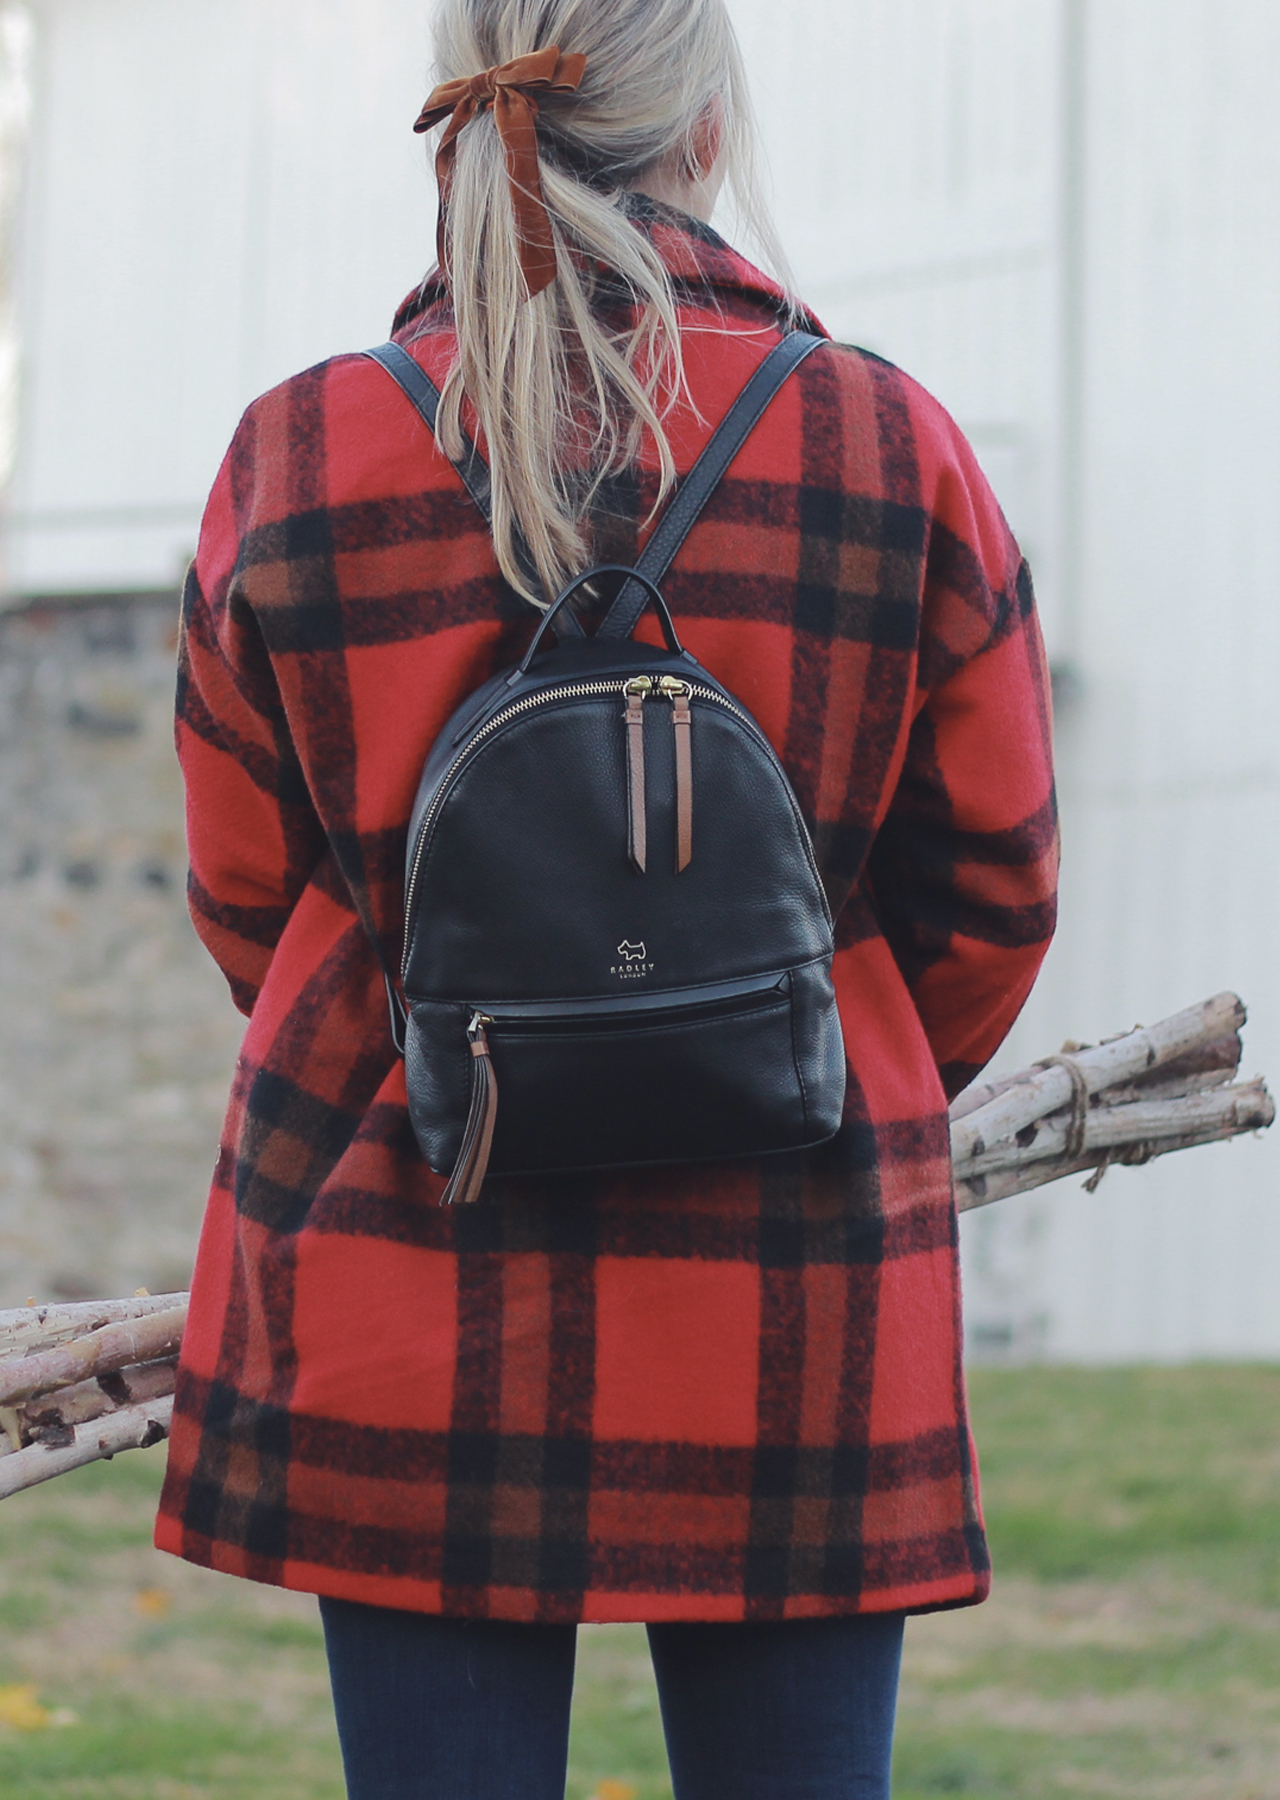 The Steele Maiden: Winter Style - Red Plaid Coat and Hiking Boots